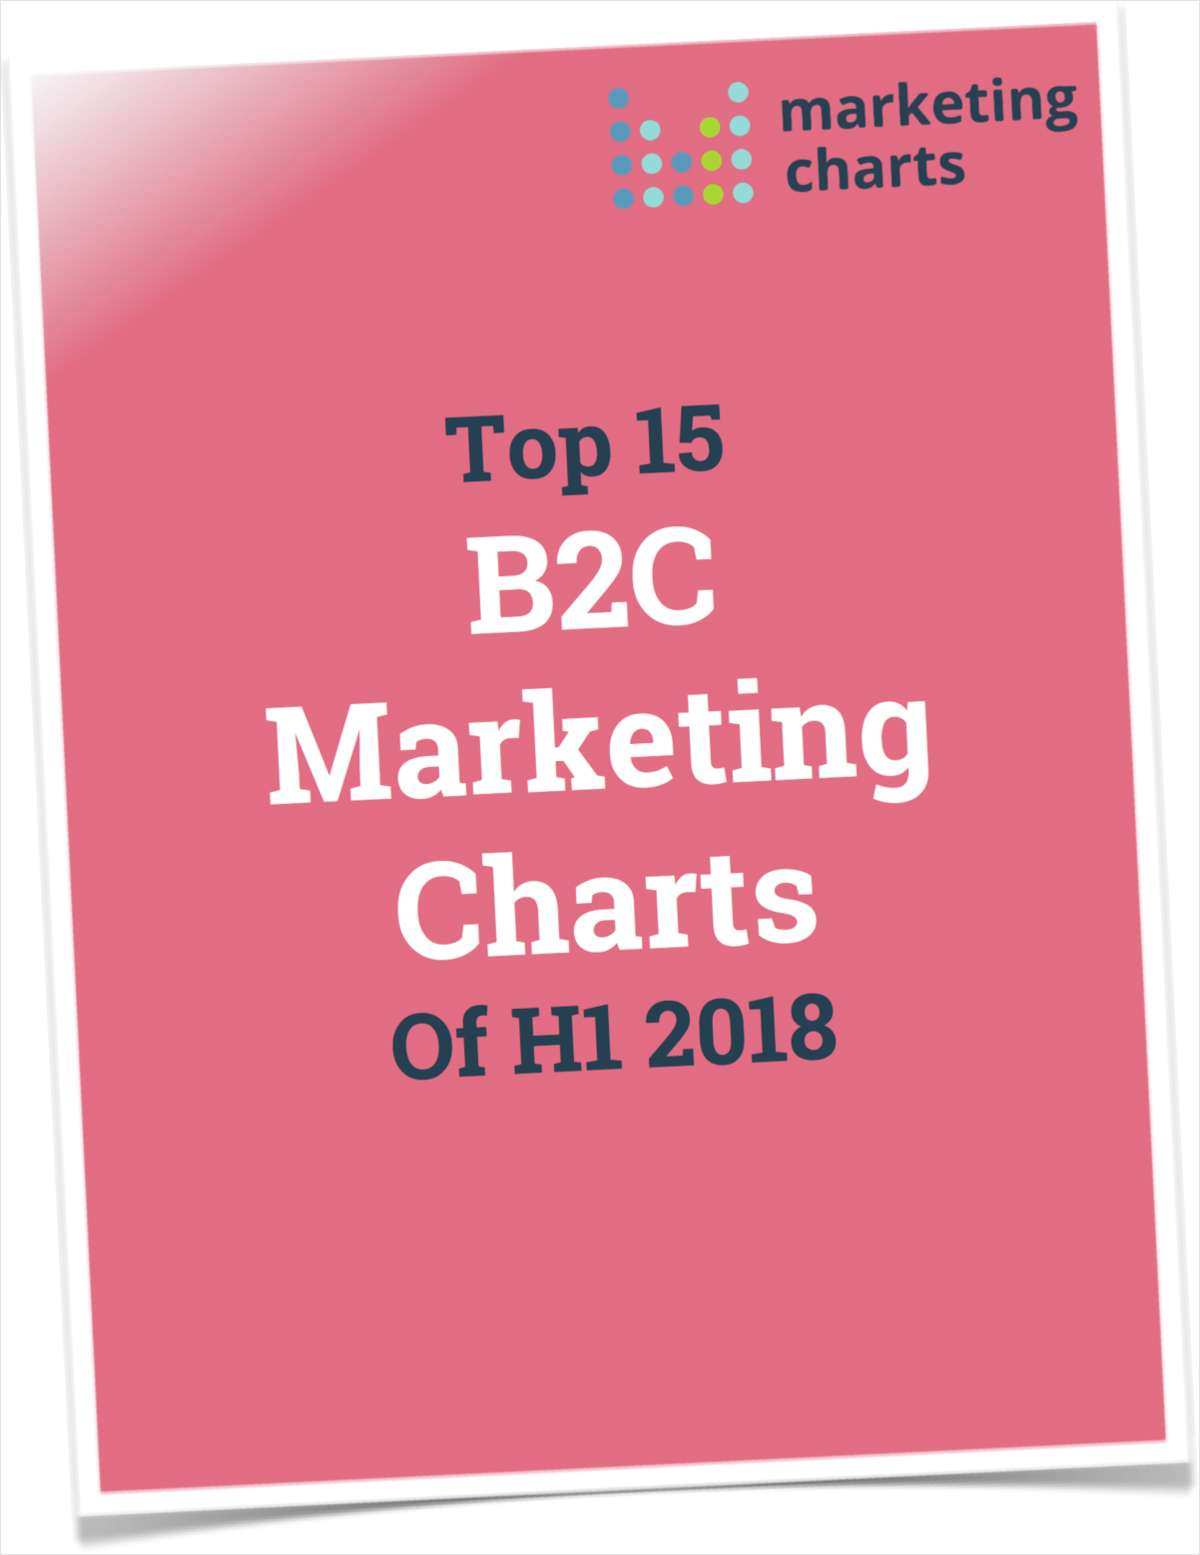 Top 15 B2C Marketing Charts of H1 2018